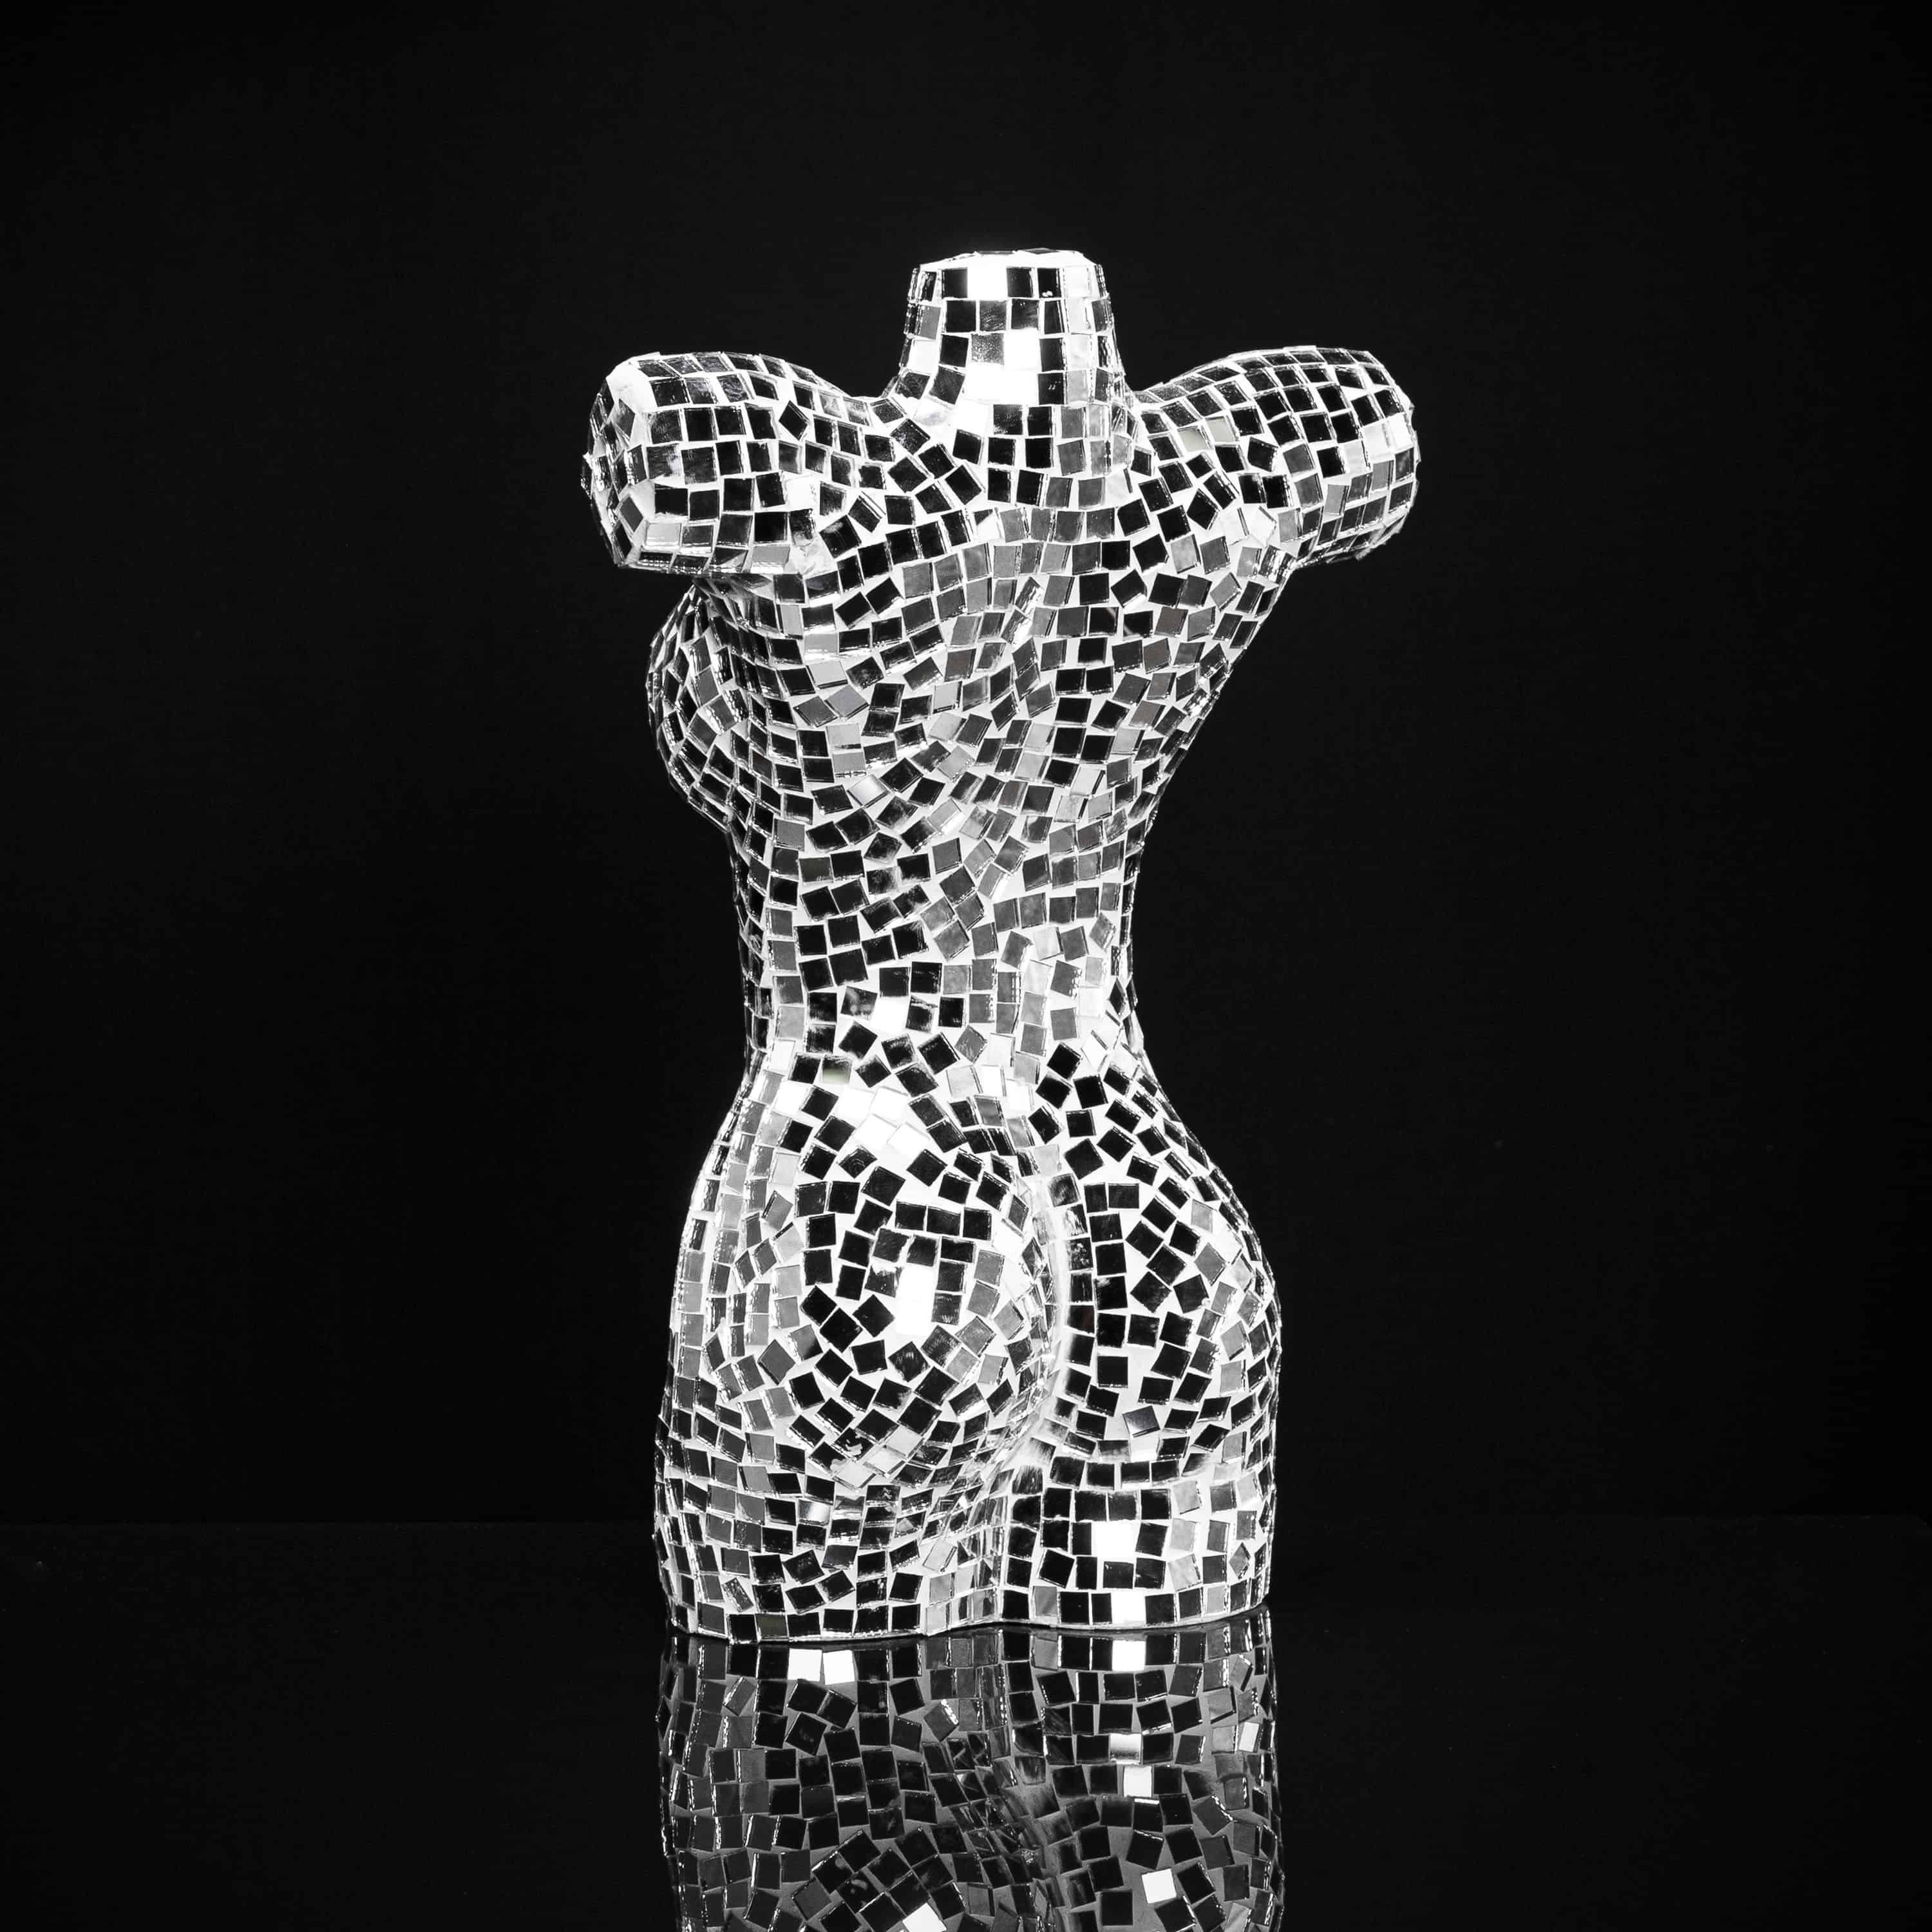 Mosaic Mirrored Woman Bust